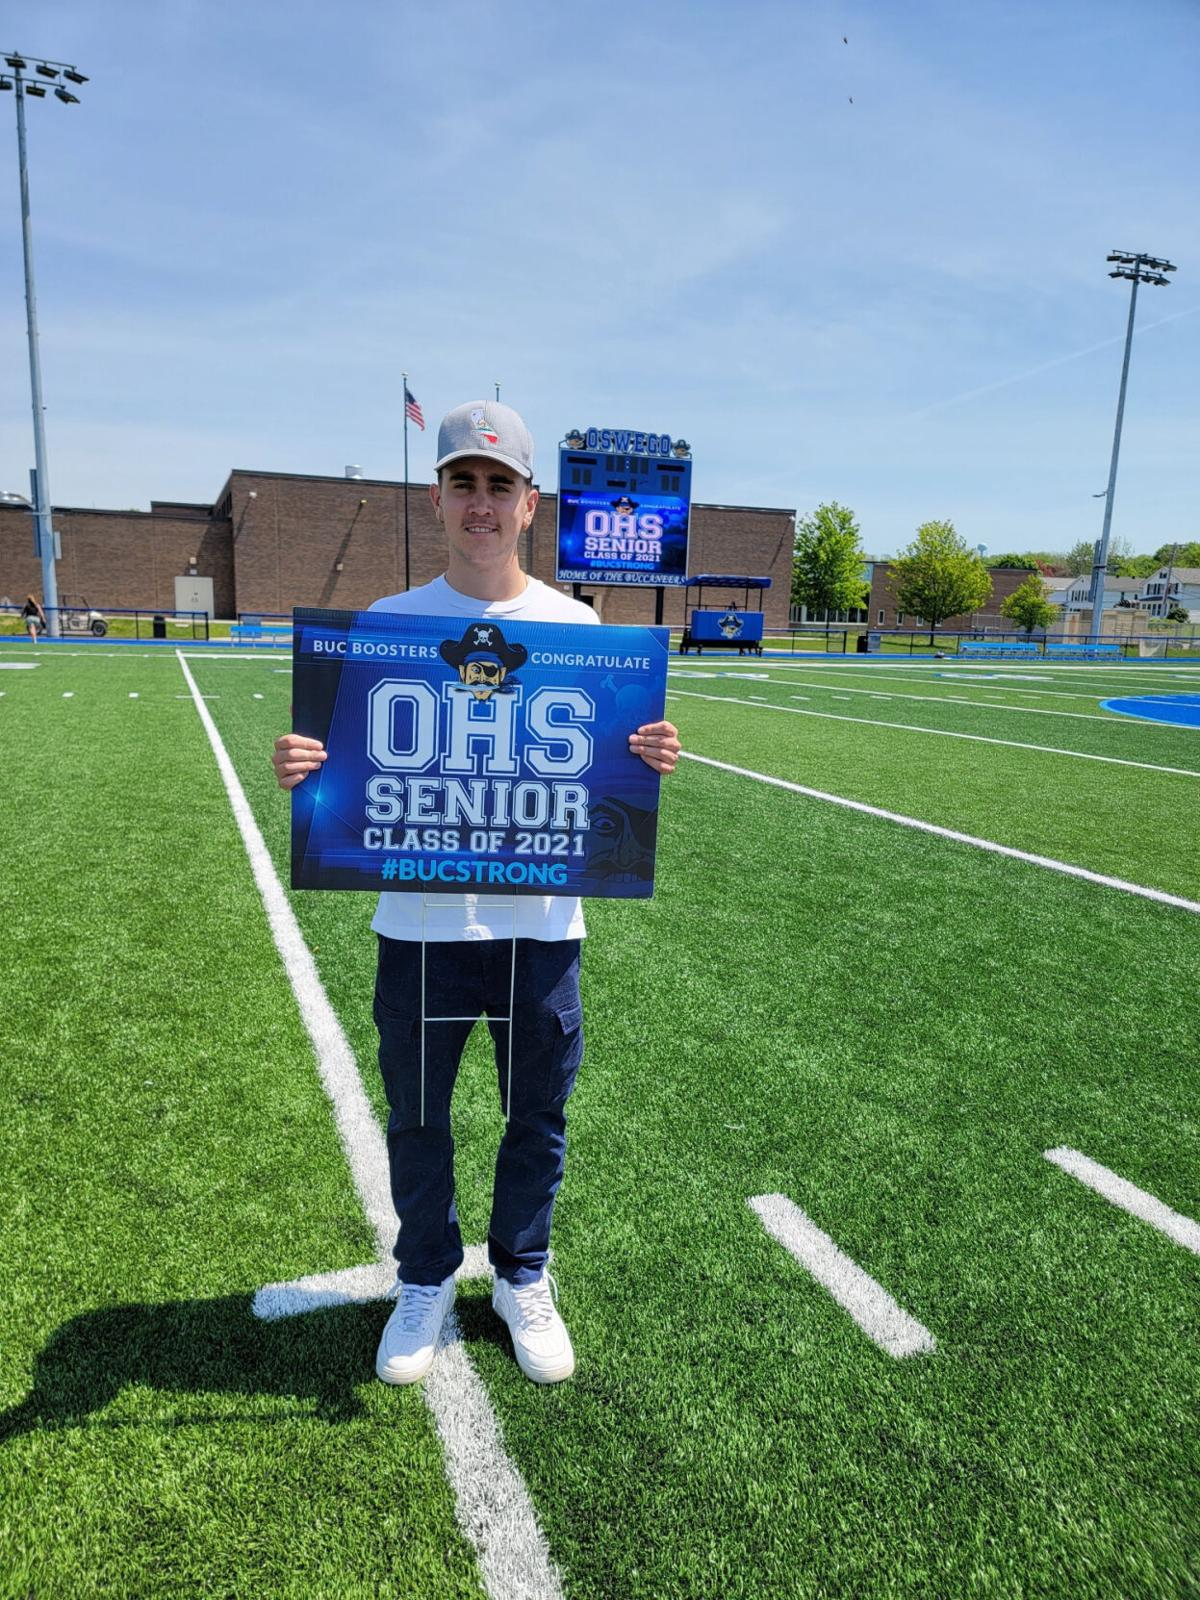 Buc Boosters support Oswego High School seniors with yard signs